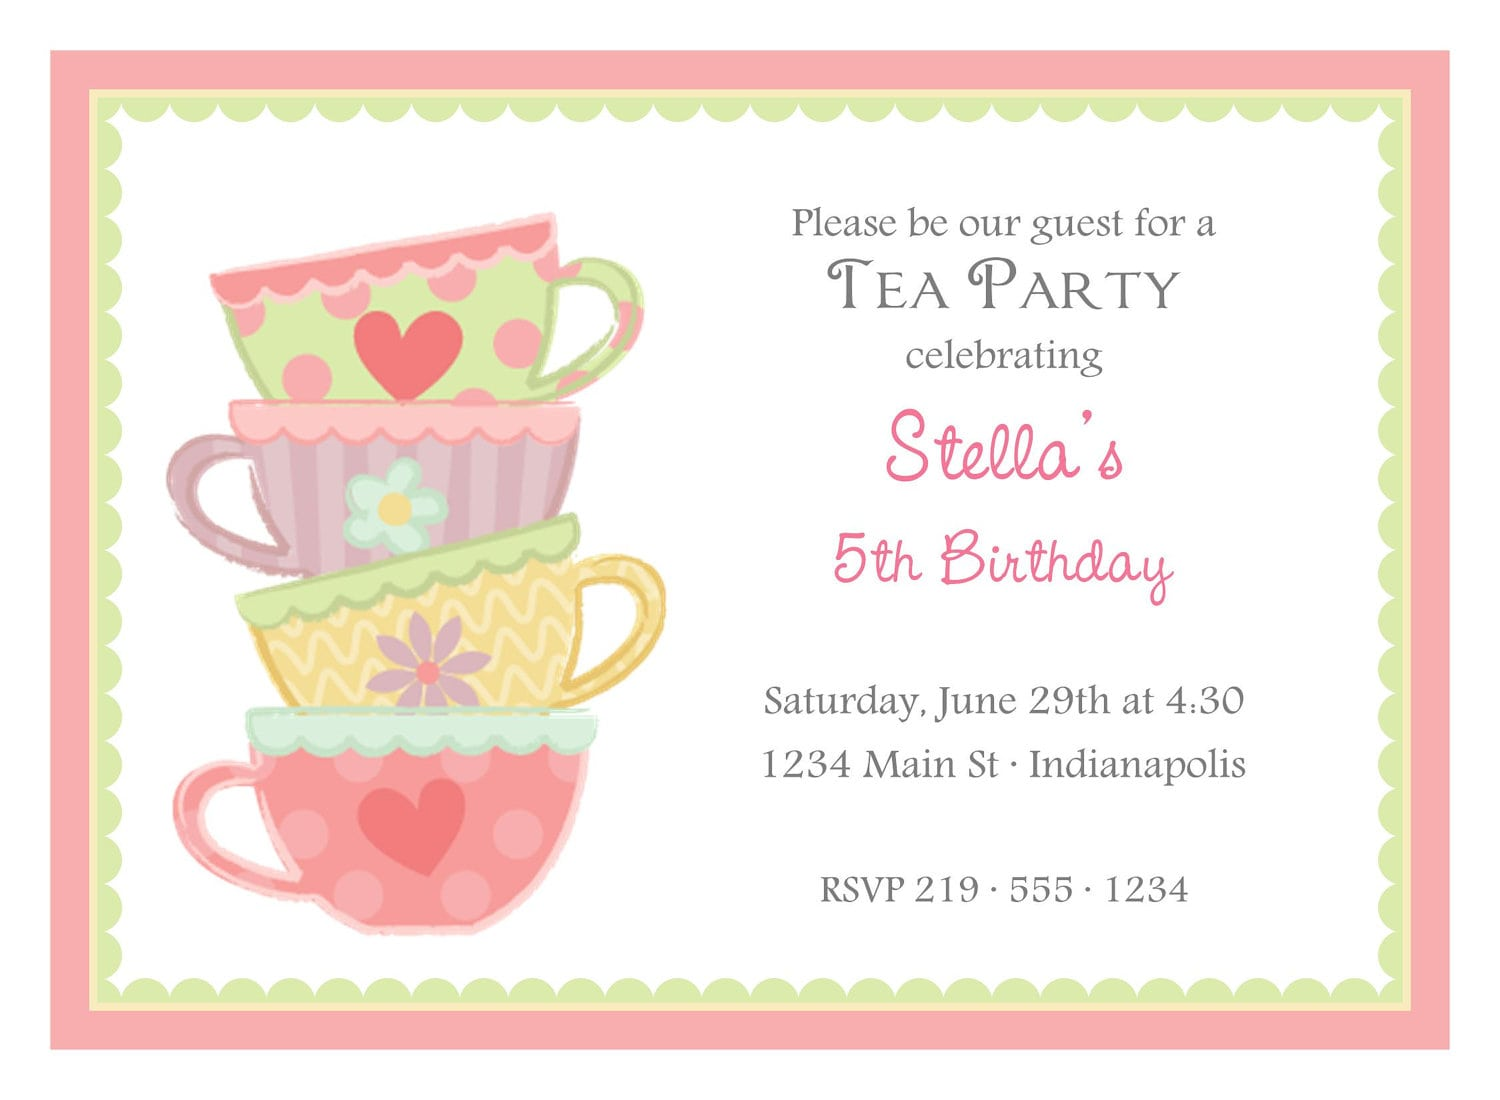 Afternoon Tea Party Invites